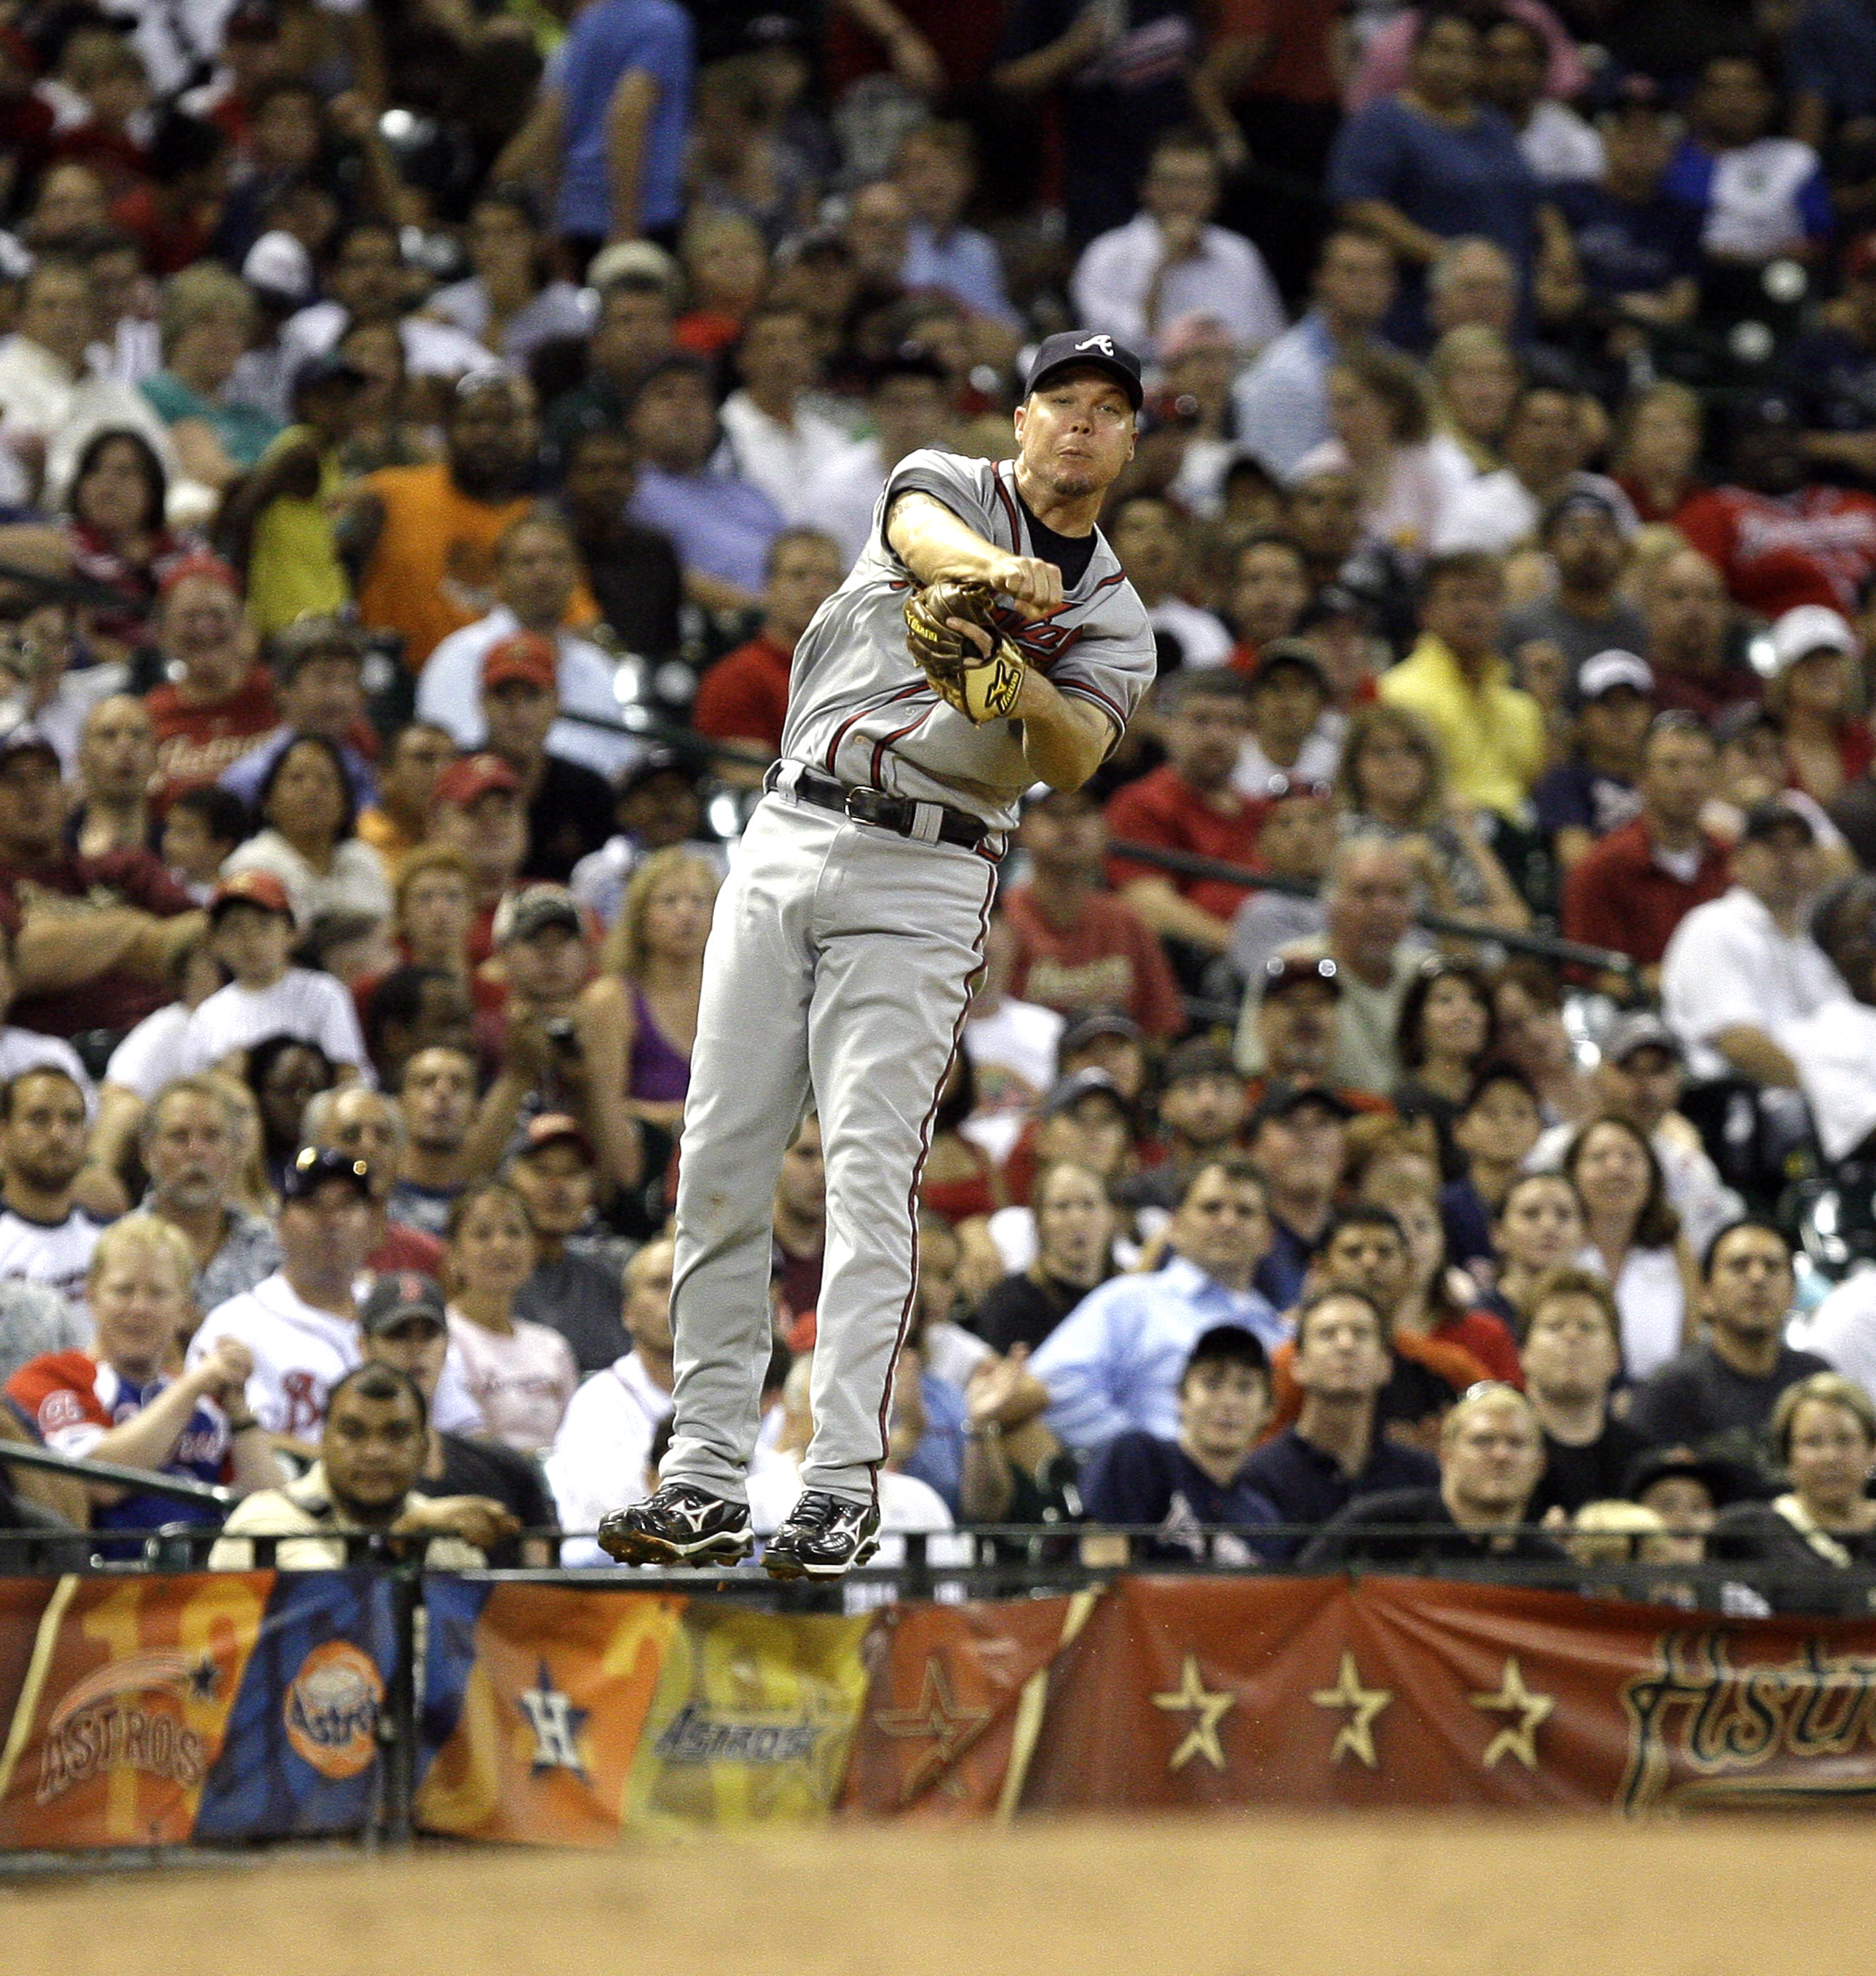 HOUSTON - AUGUST 10:  Third baseman Chipper Jones #10 of the Atlanta Braves throws out Hunter Pence of the Houston Astros from deep behind the base at Minute Maid Park on August 10, 2010 in Houston, Texas. Jones left the game after injuring himself on the